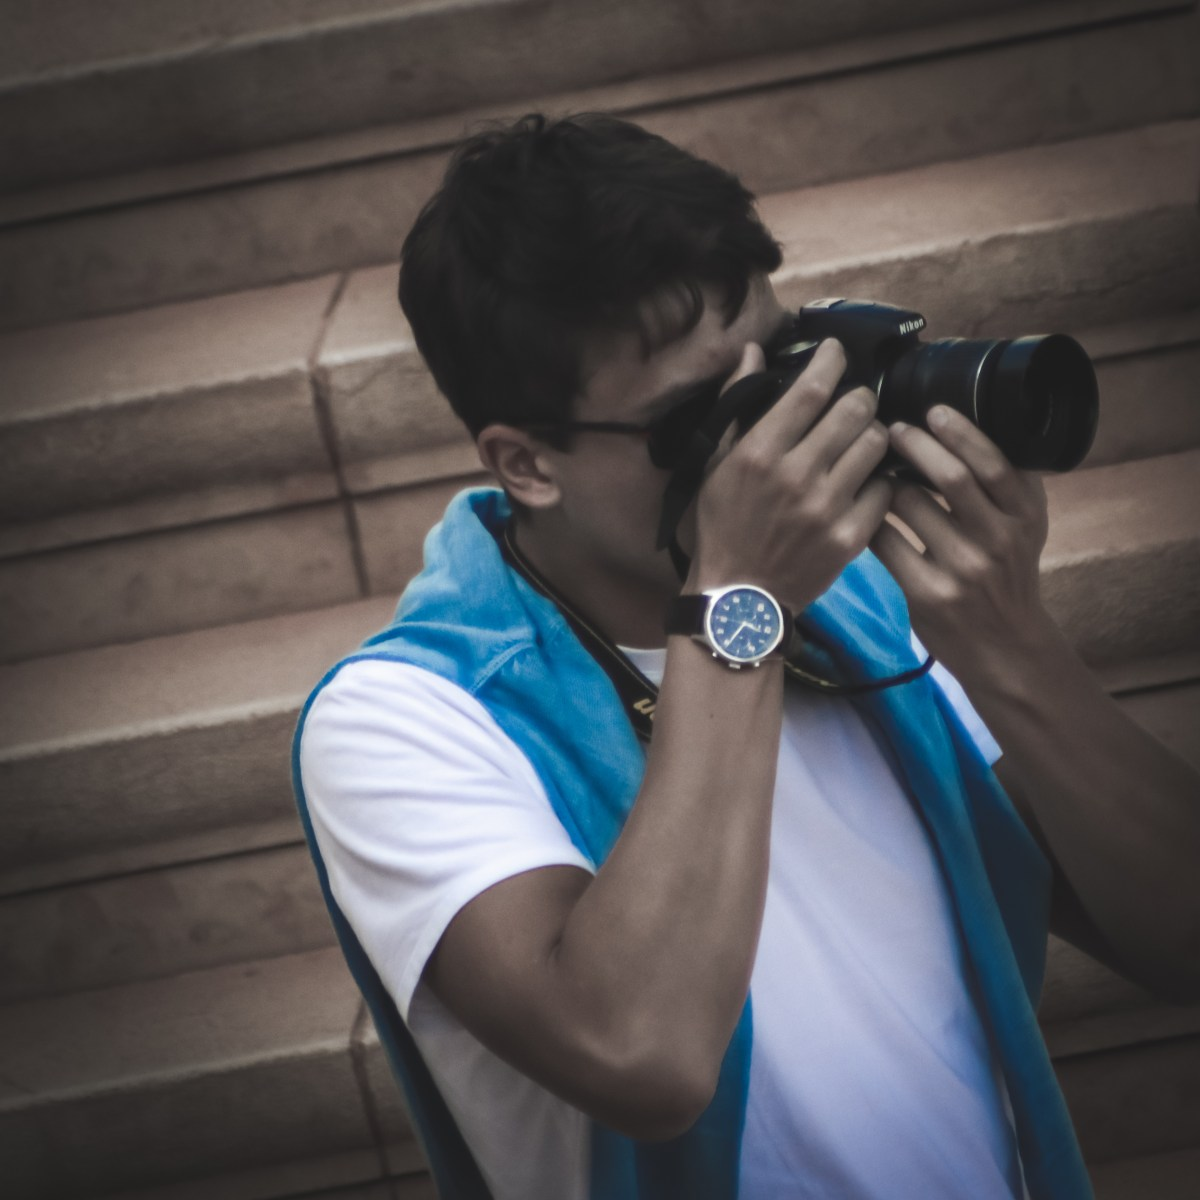 Cool watch, cool camera, cool guy